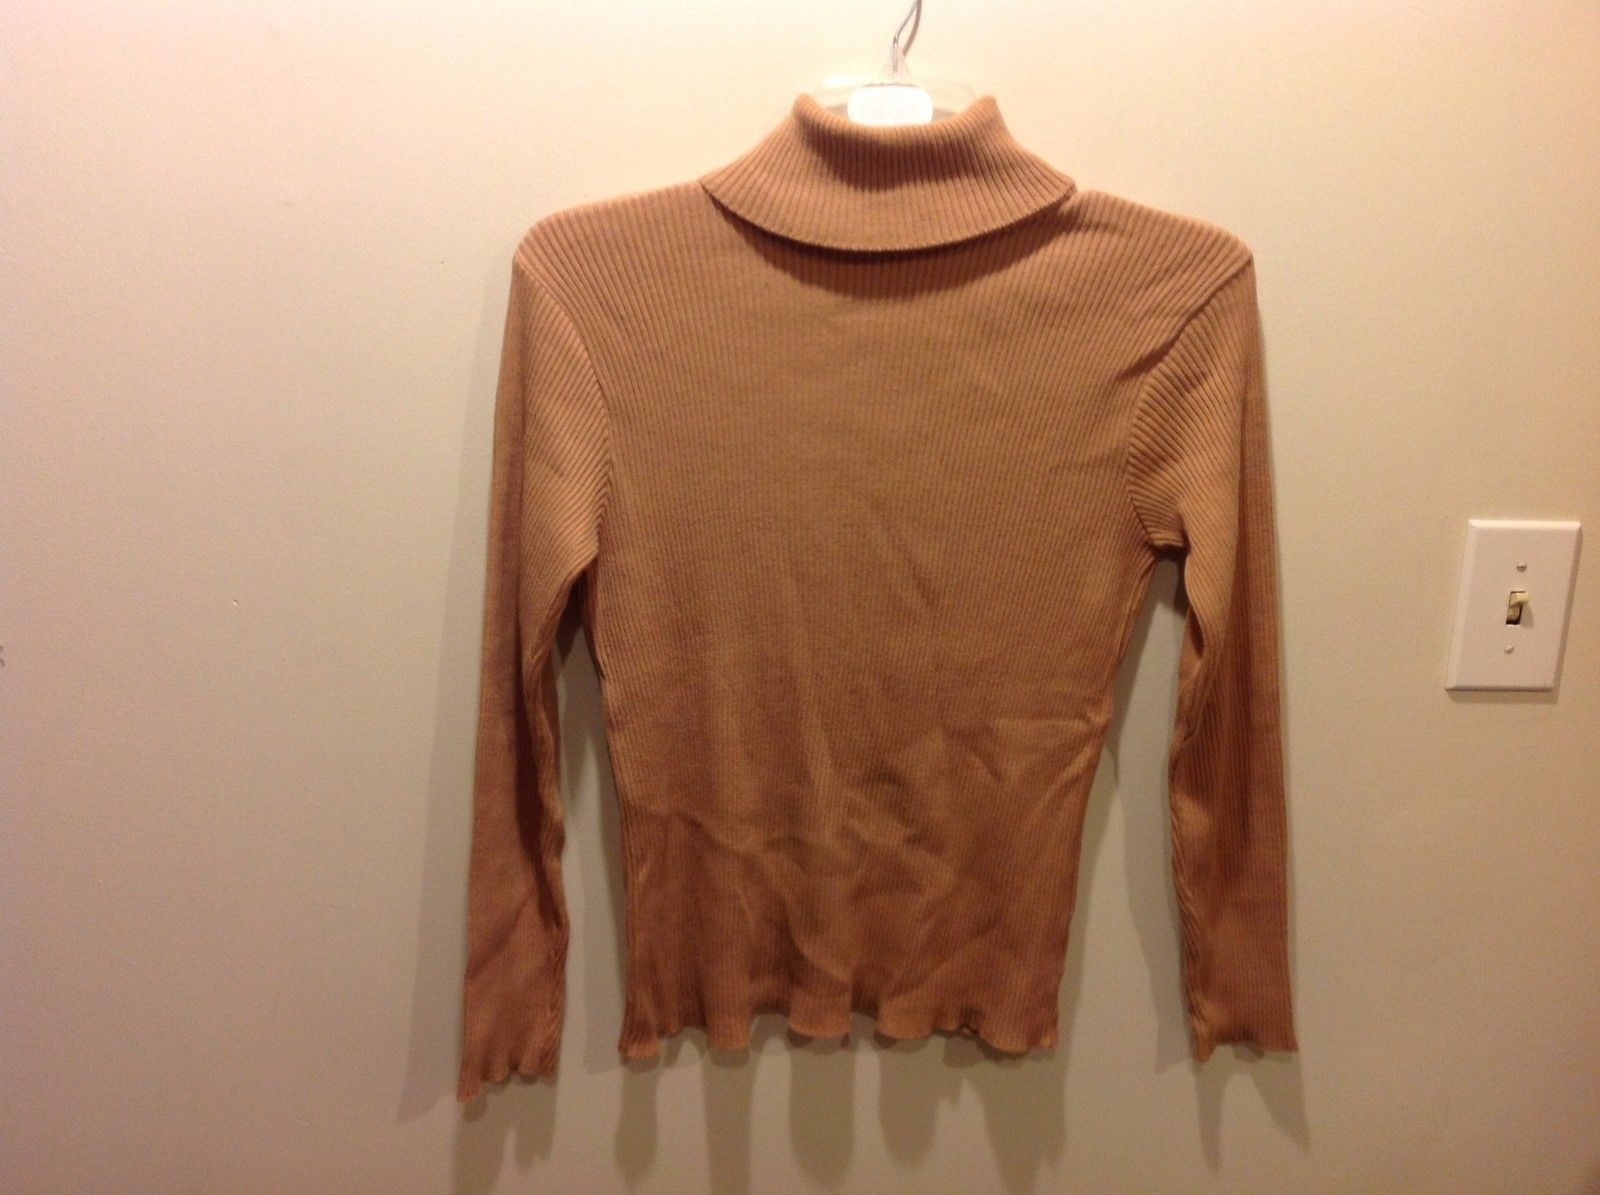 Moda Int'l Tan Nude Textured Stylish Sweater Turtleneck/Mock Sz M